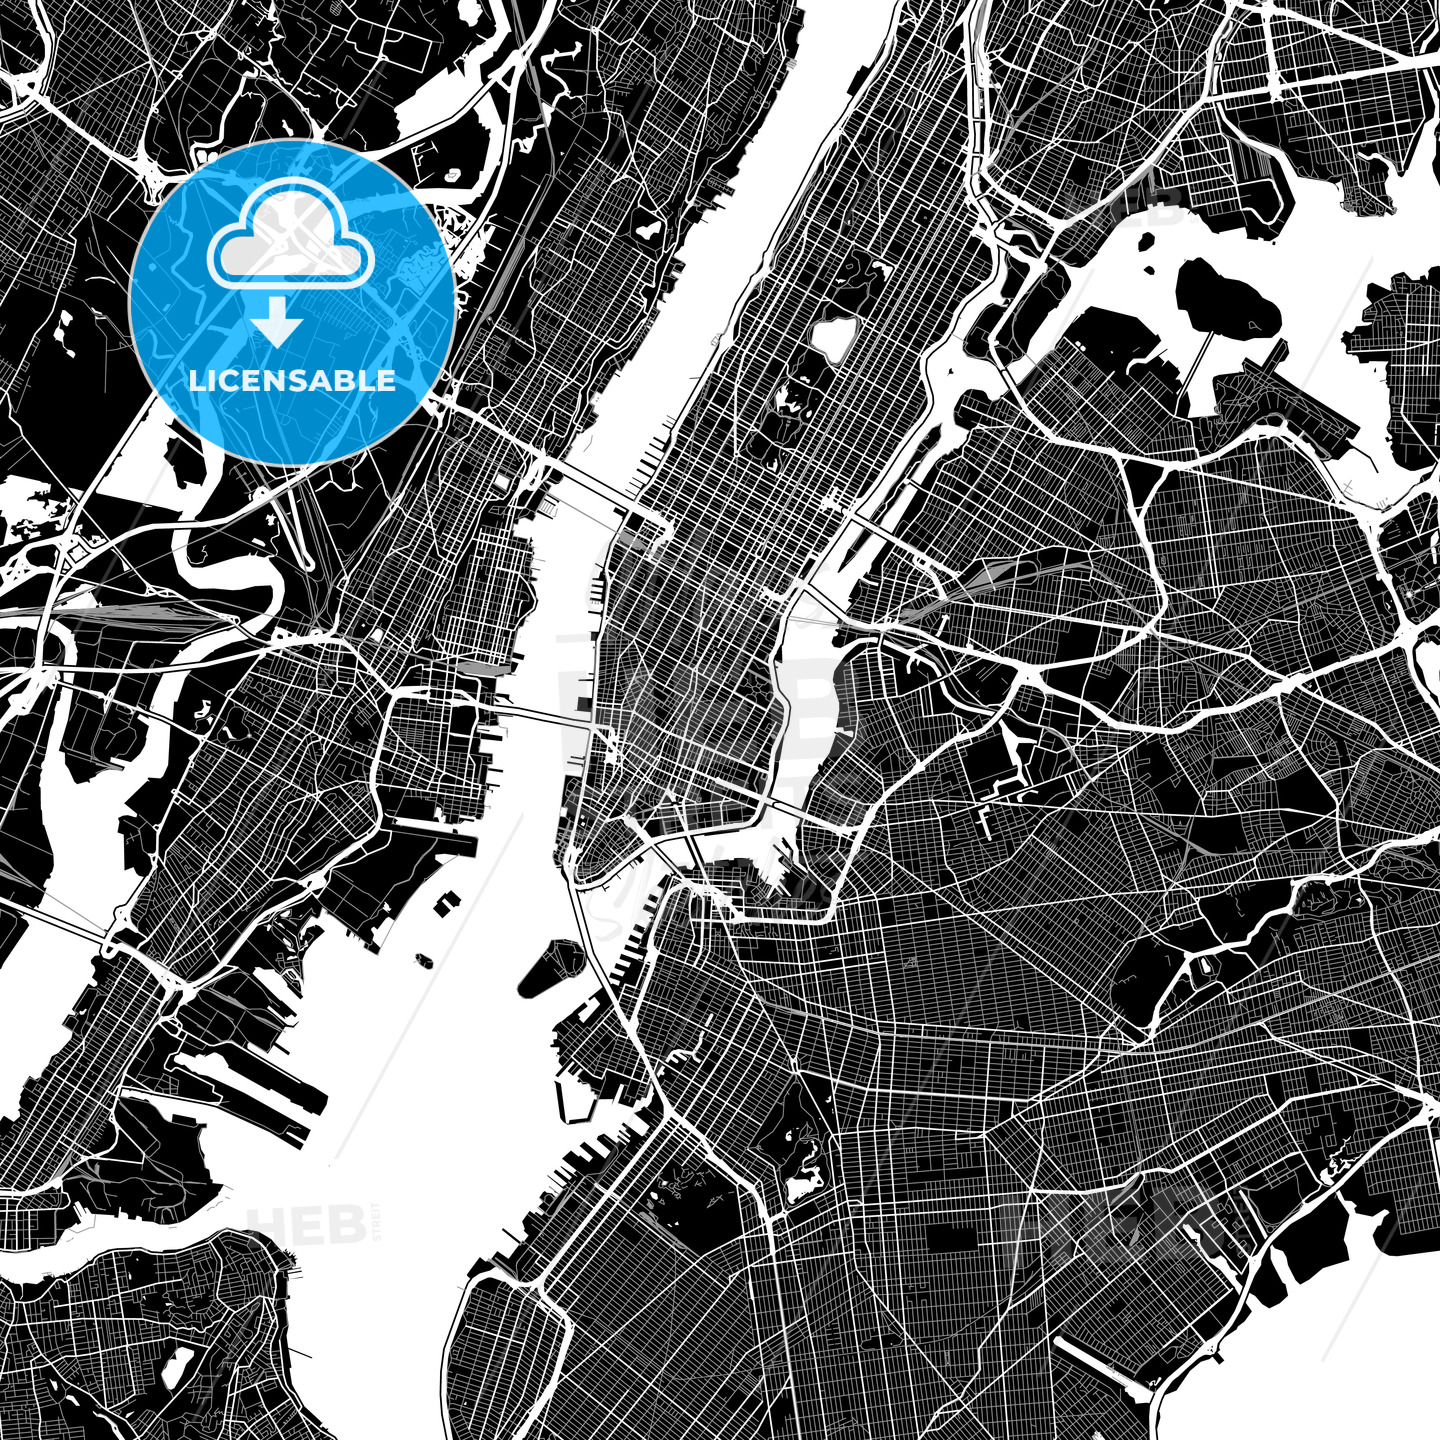 Area map of New York City, USA